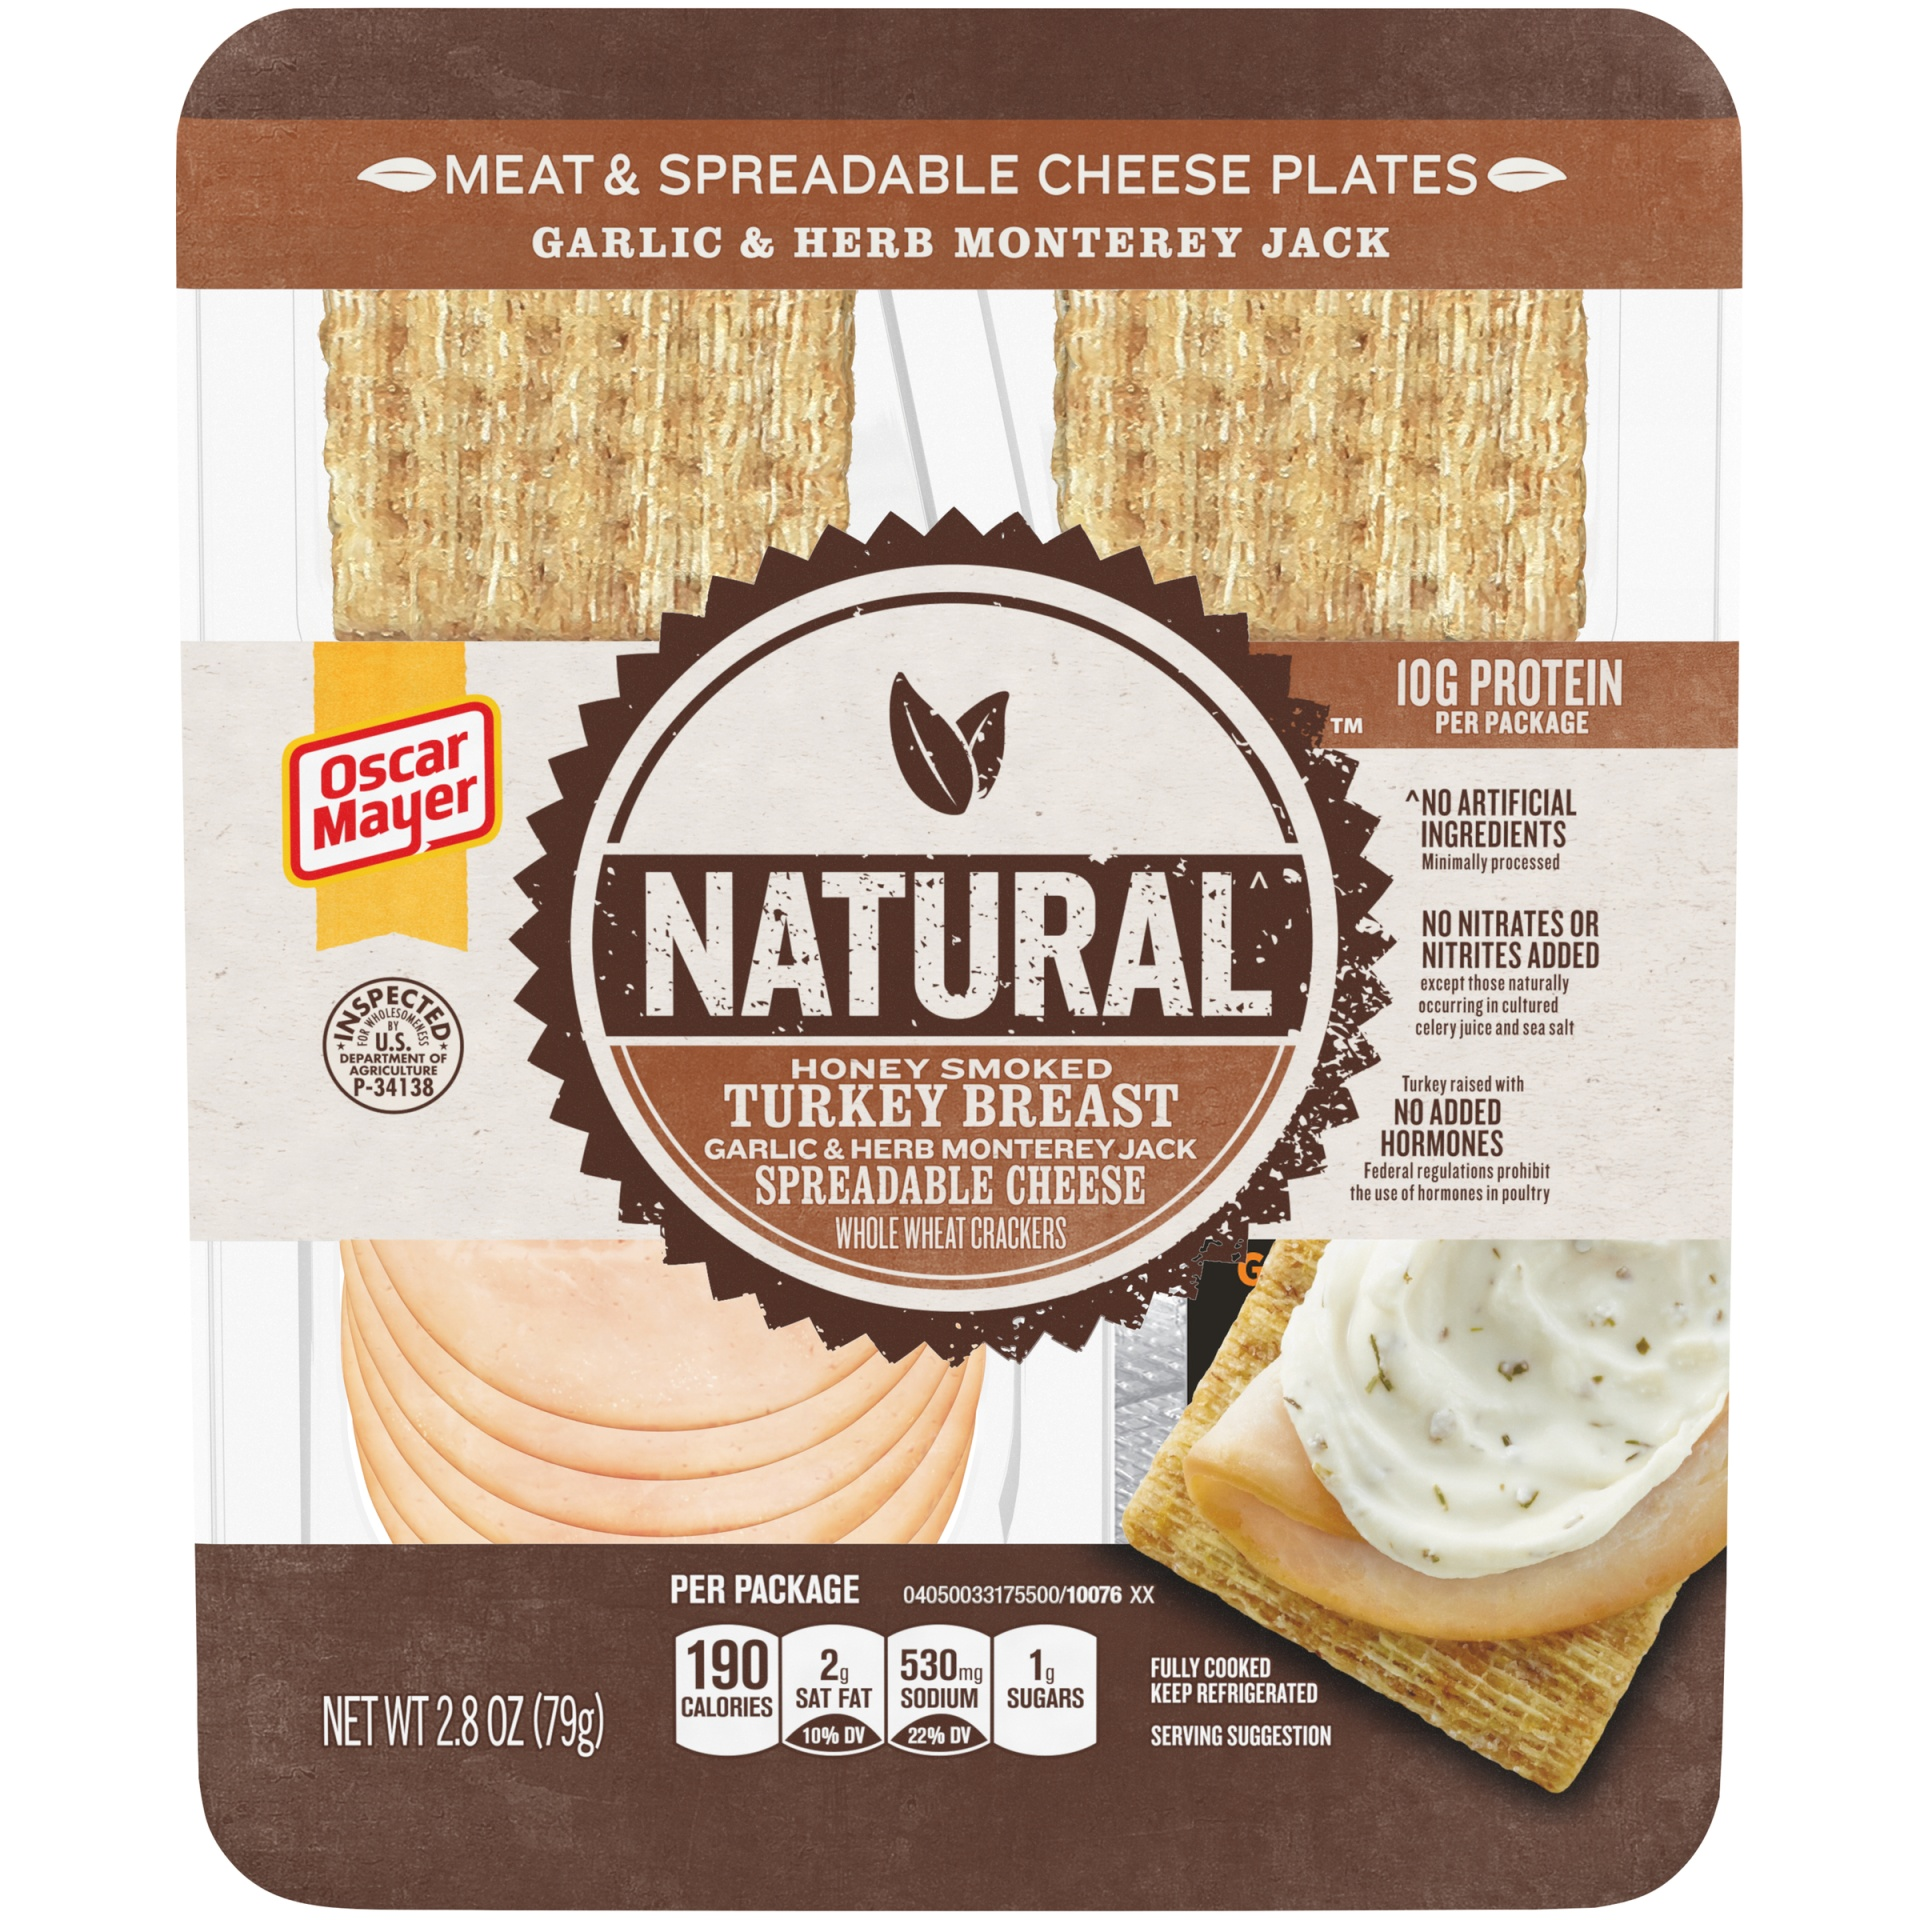 slide 1 of 6, Oscar Mayer Natural Garlic & Herb Monterey Jack Meat & Spreadable Cheese Plates,